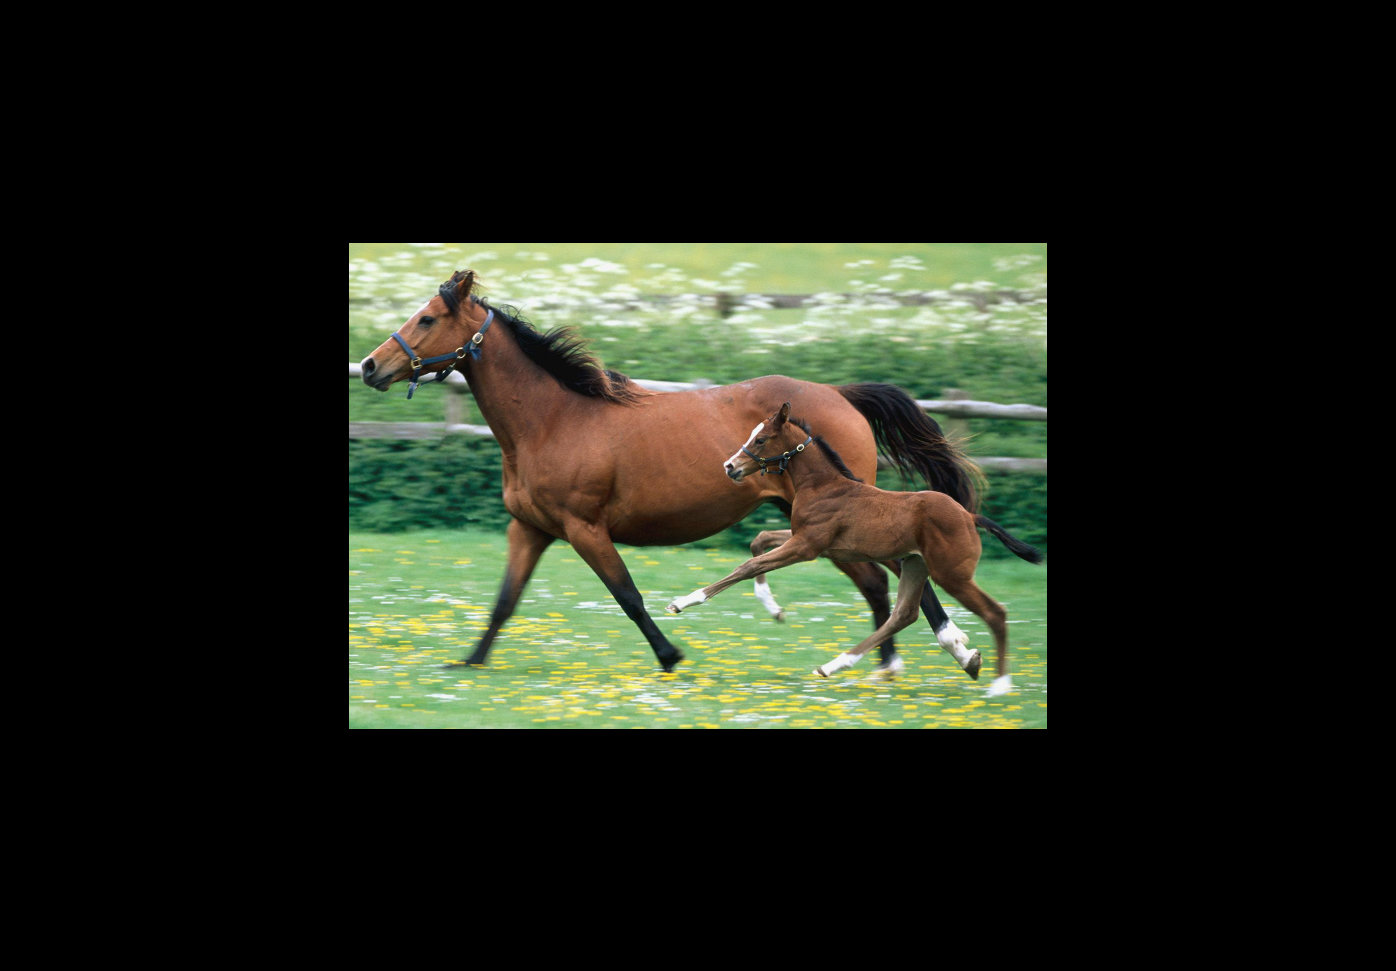 Mother Horse And Foal Horses Mother And Foal